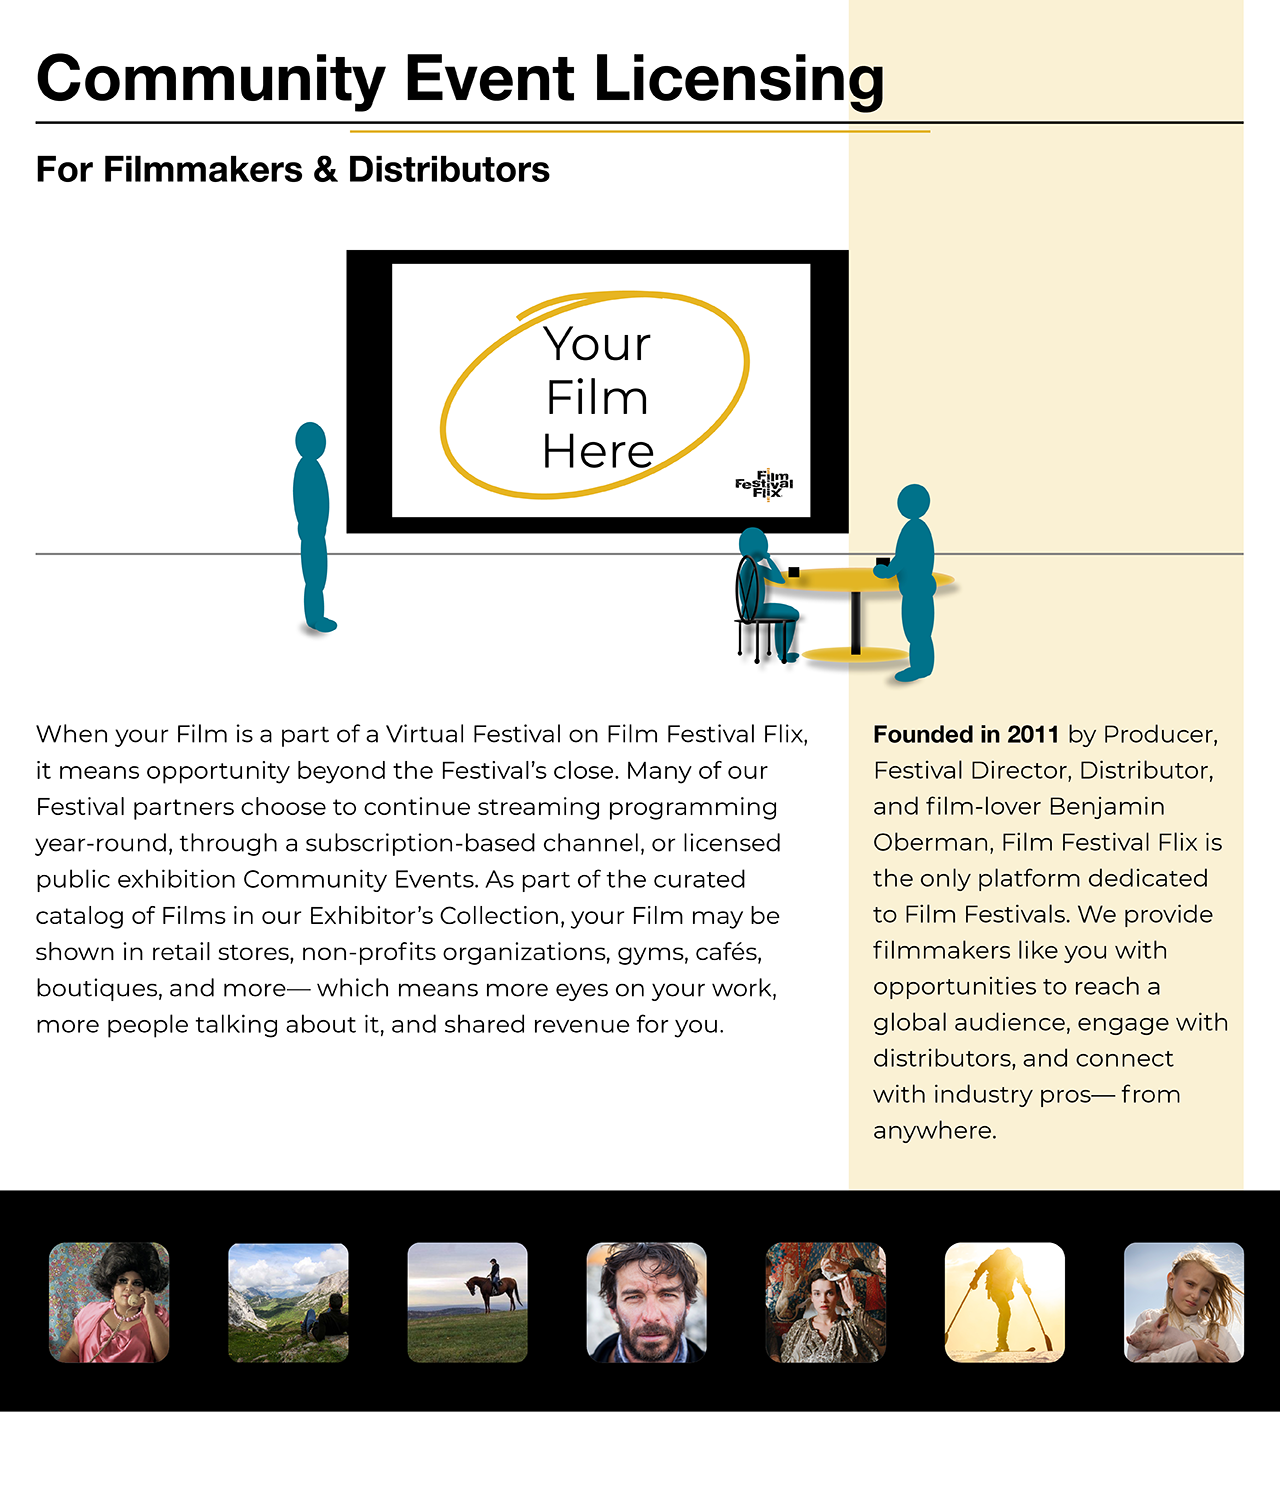 Community Event Licensing for Filmmakers and Distributors